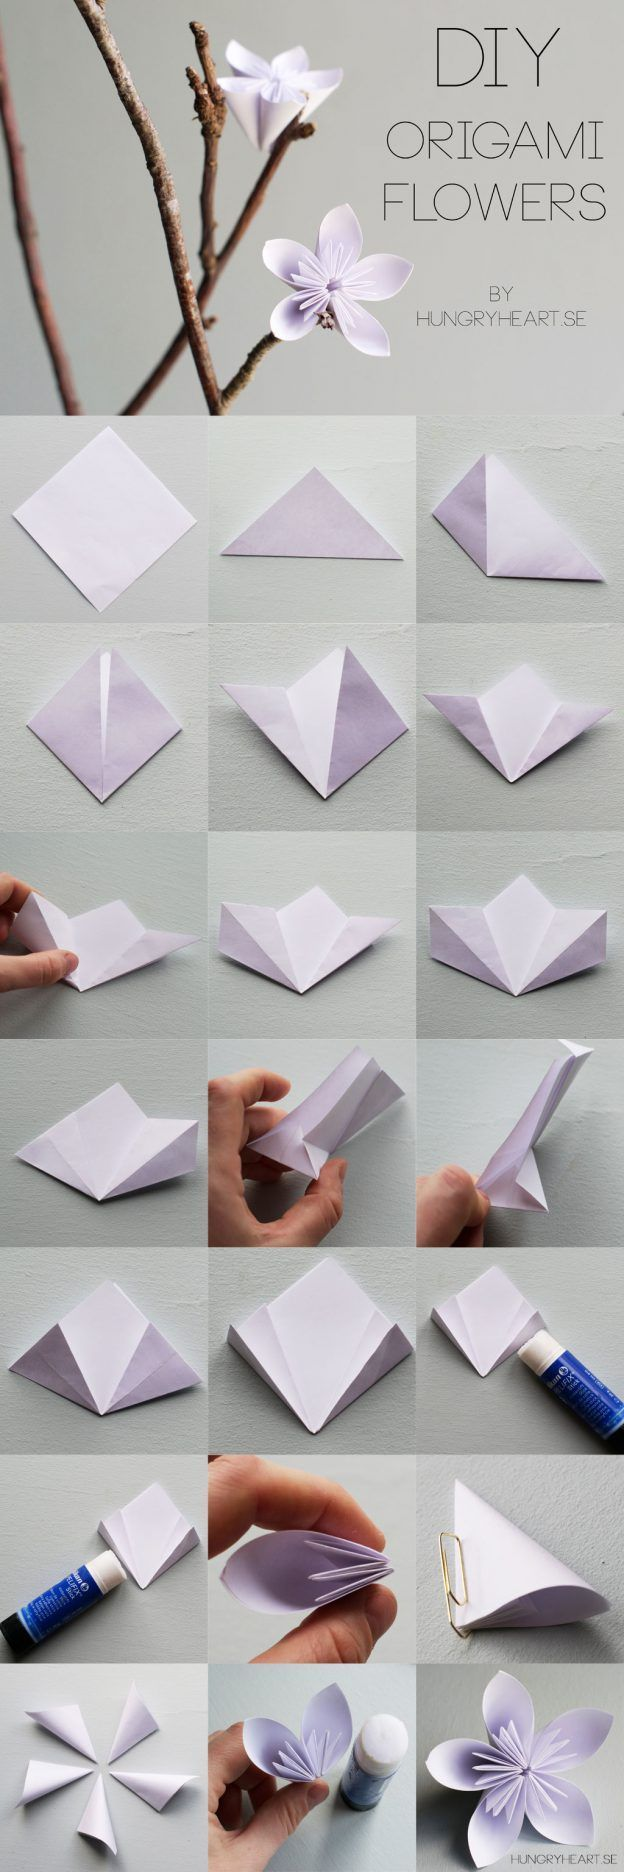 137 Best Origami Images On Pinterest Origami Paper Paper Crafts